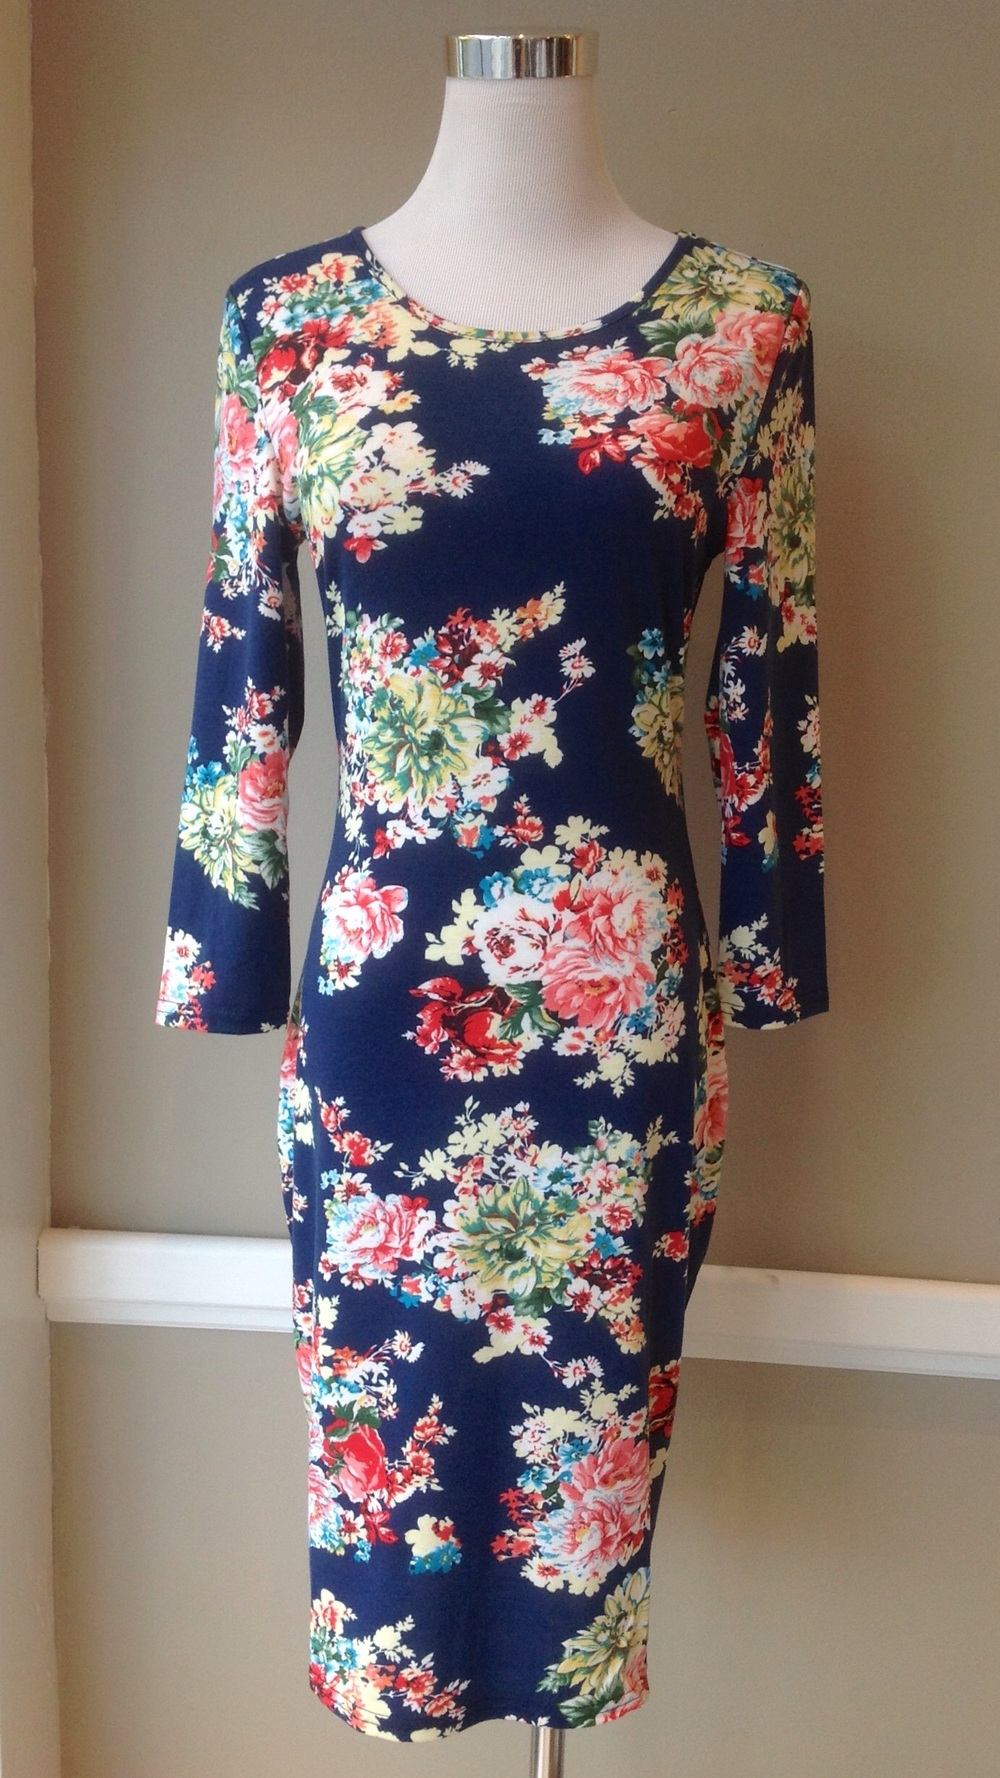 Fitted floral print midi dress in Navy/Multi, $35